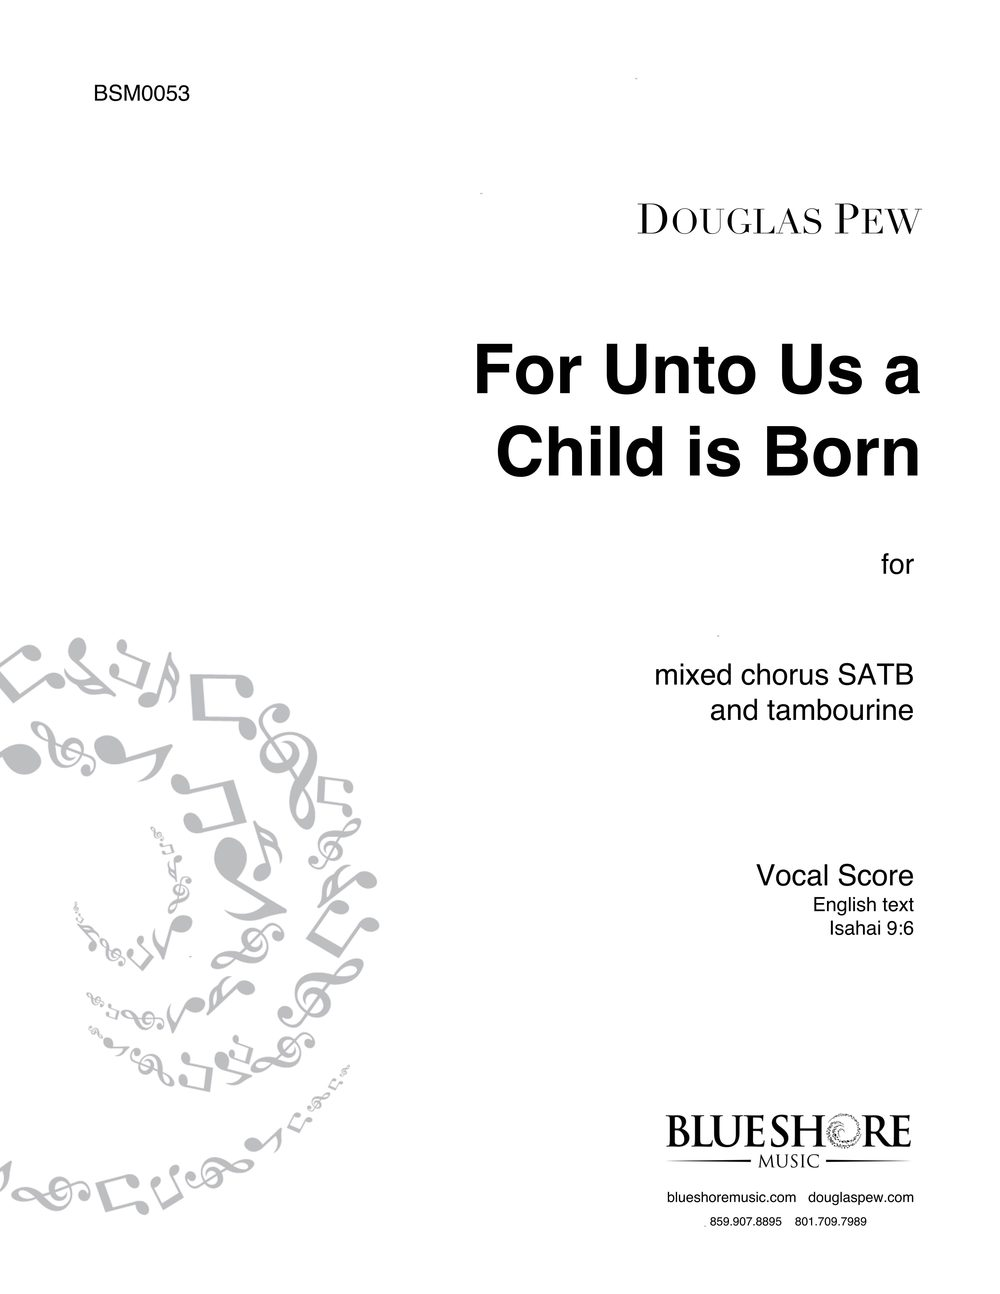 For Unto Us A Child Is Born - SATB and Tambourine